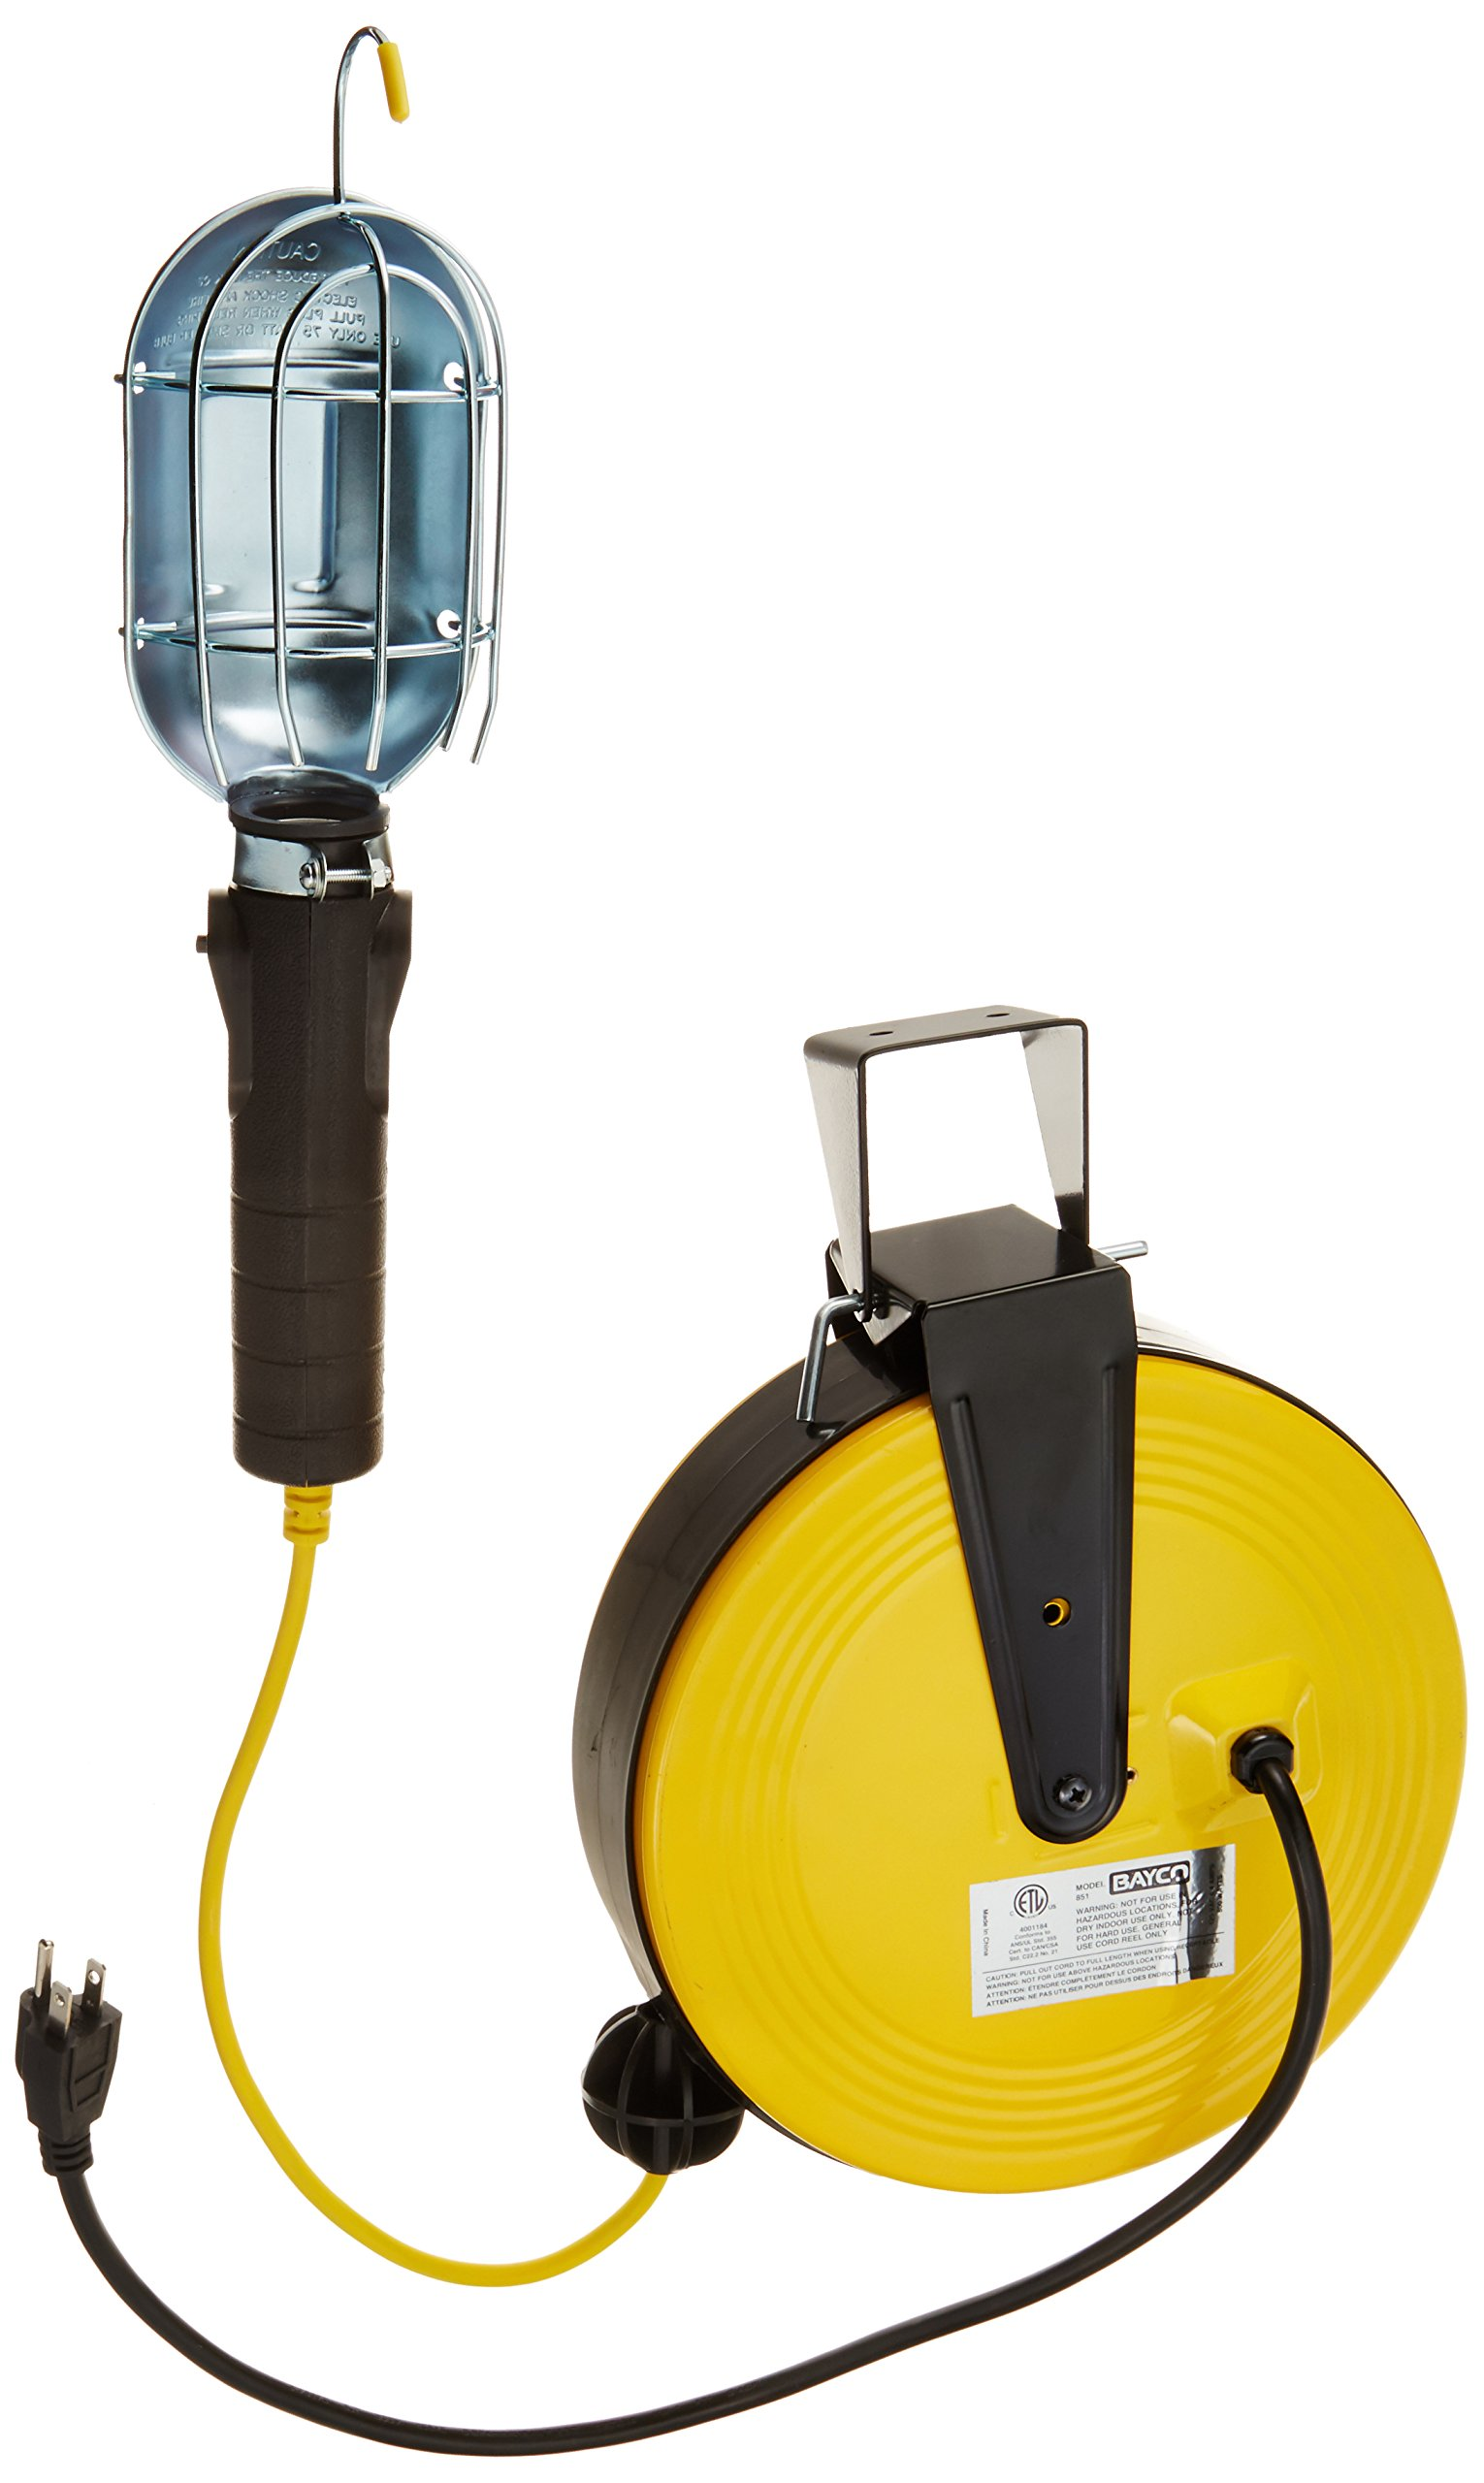 Bayco SL-851 Professional Series Metal Shield Incandescent Utility Light on 50 Foot Metal Reel by Bayco